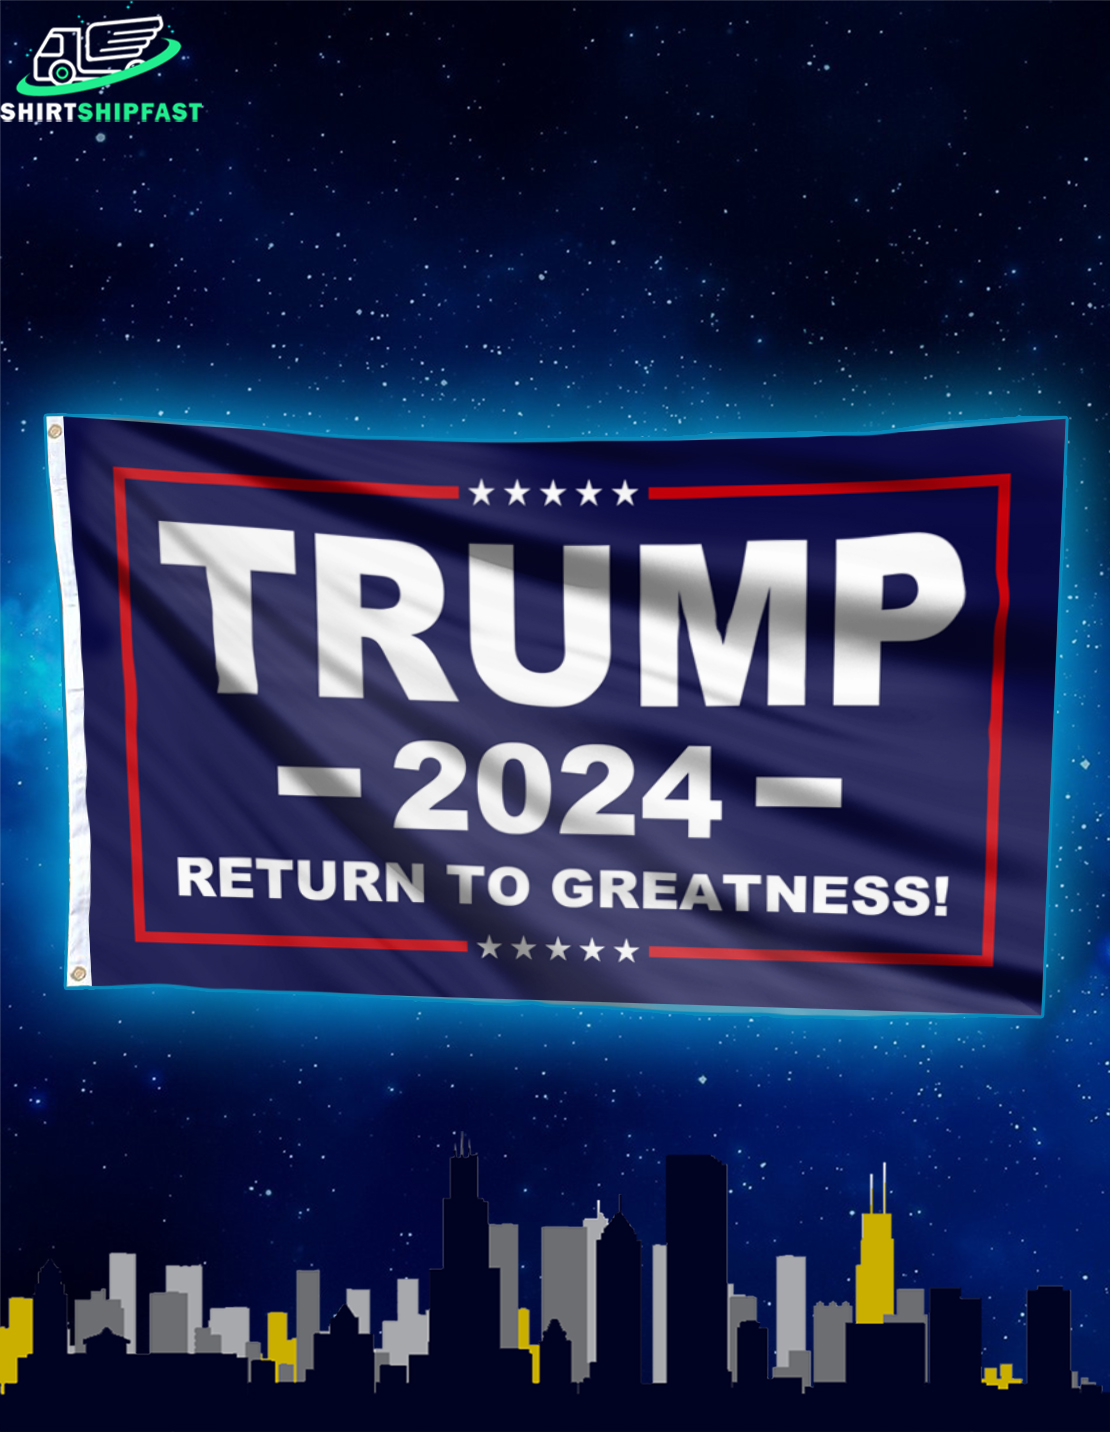 Trump 2024 return to greatness flag - Picture 2